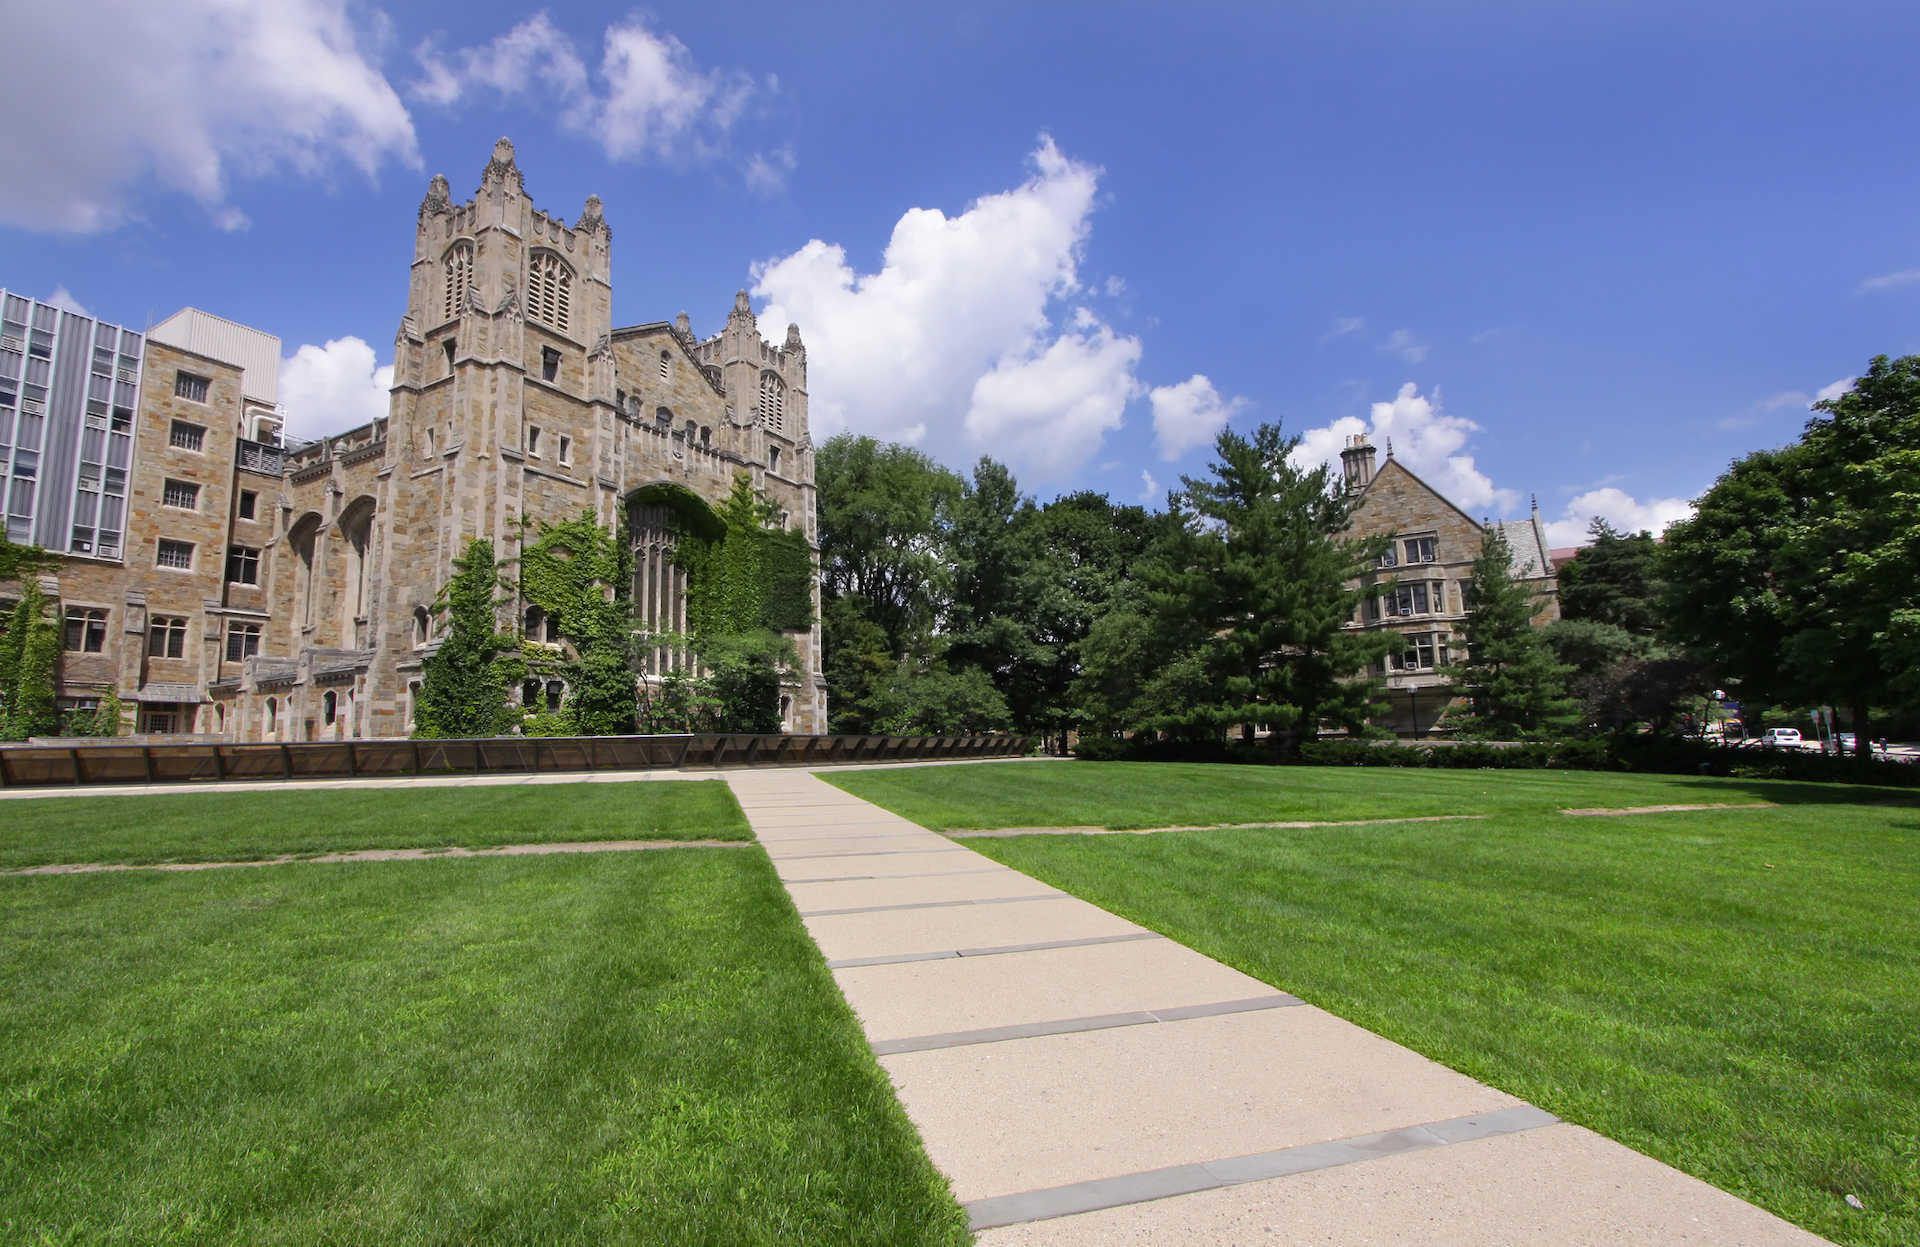 Plan your University of Michigan Visit in Ann Arbor and Go Blue!